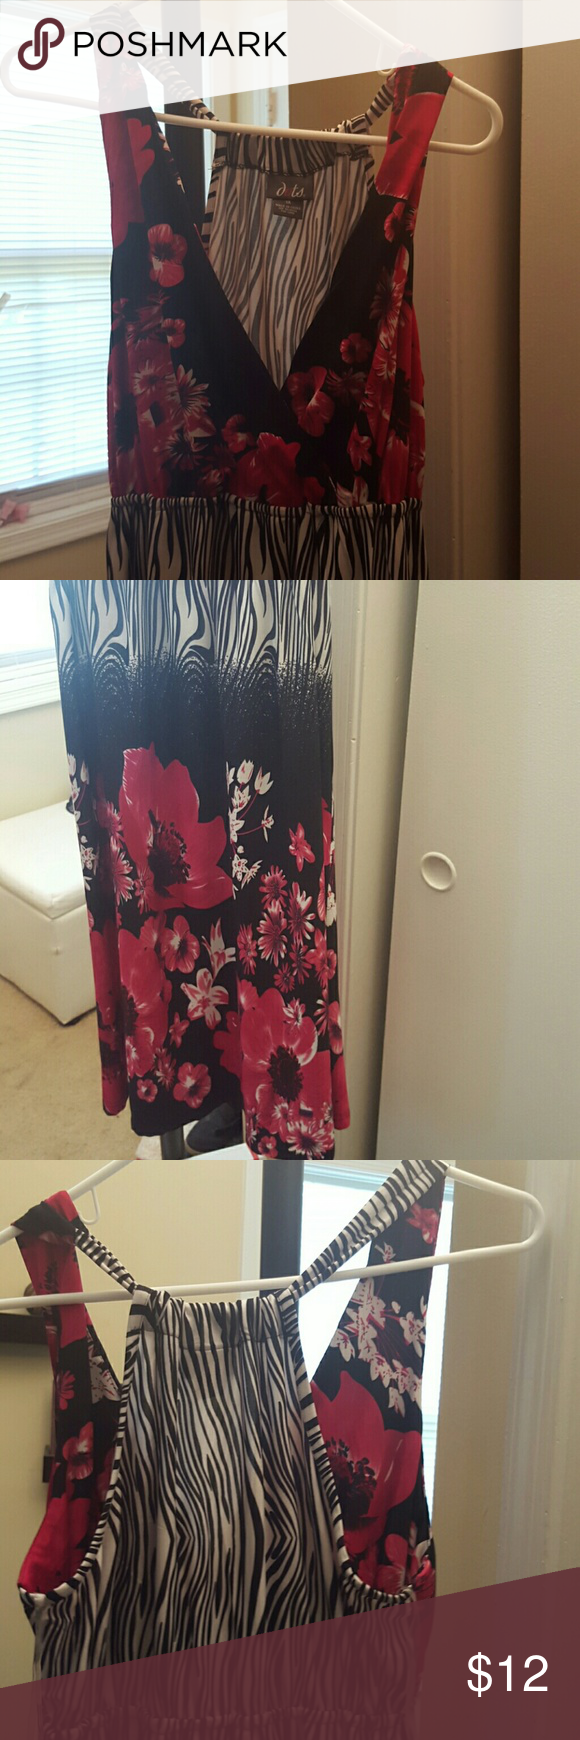 Racer Back Dress Beautiful racer back style dress in a flower and ...